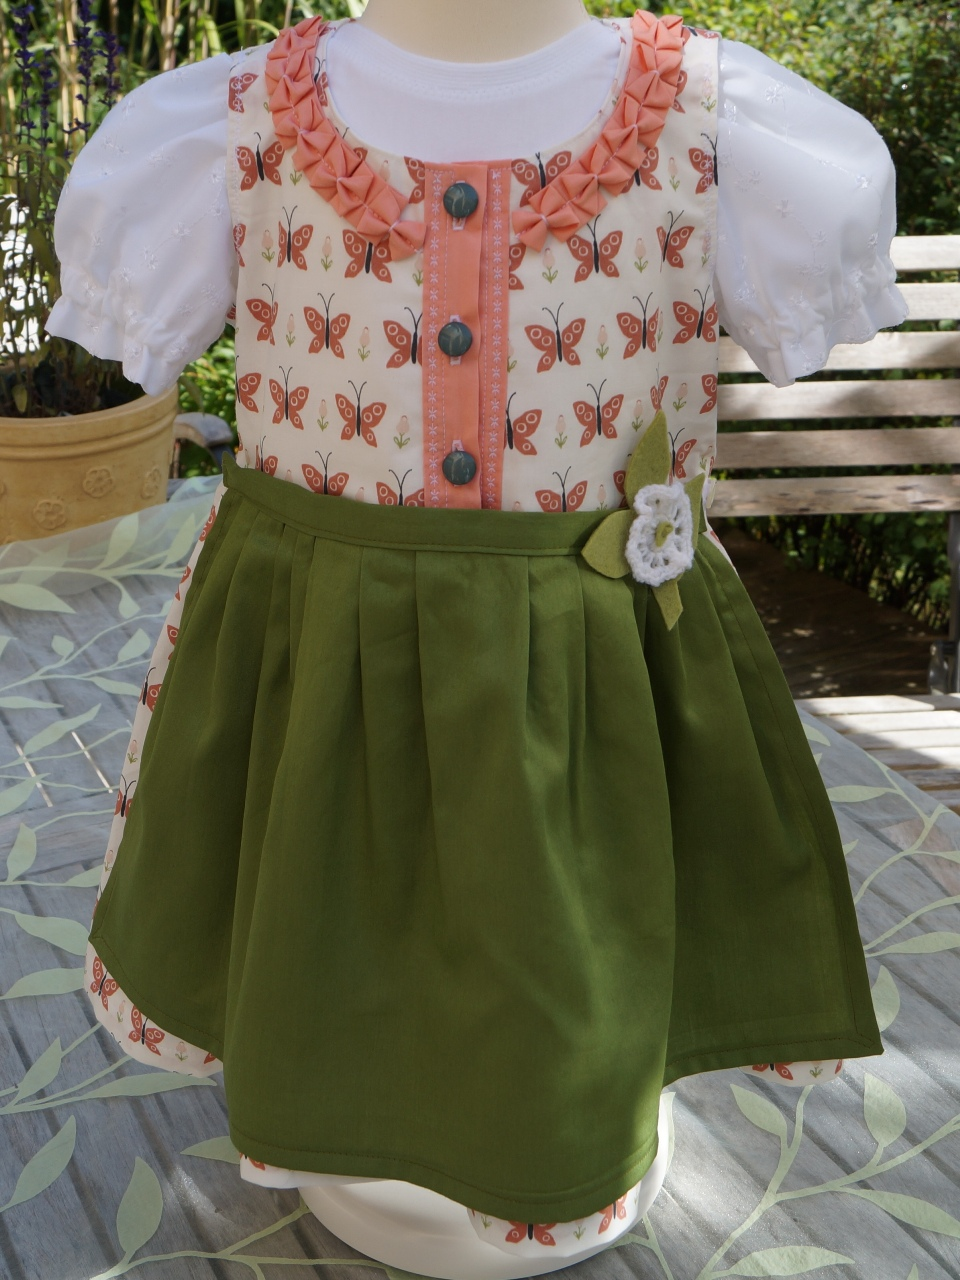 Friedoline Babydirndl : Made in Germany